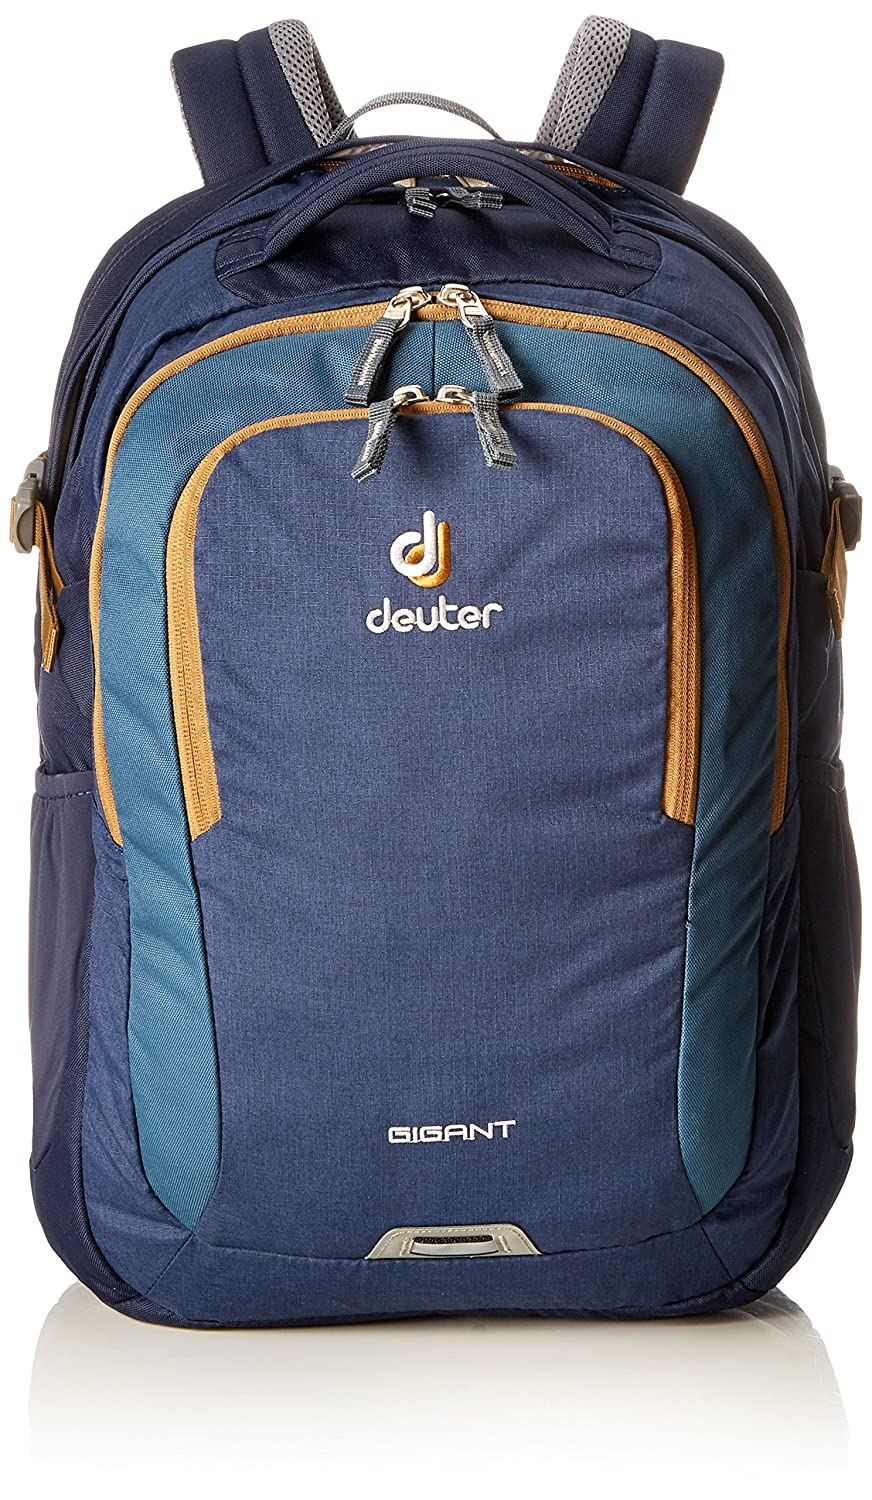 Deuter Sac à Dos Adultes Gigant, Midnight de Lion, 47 x 35 x 27 cm, 32 L